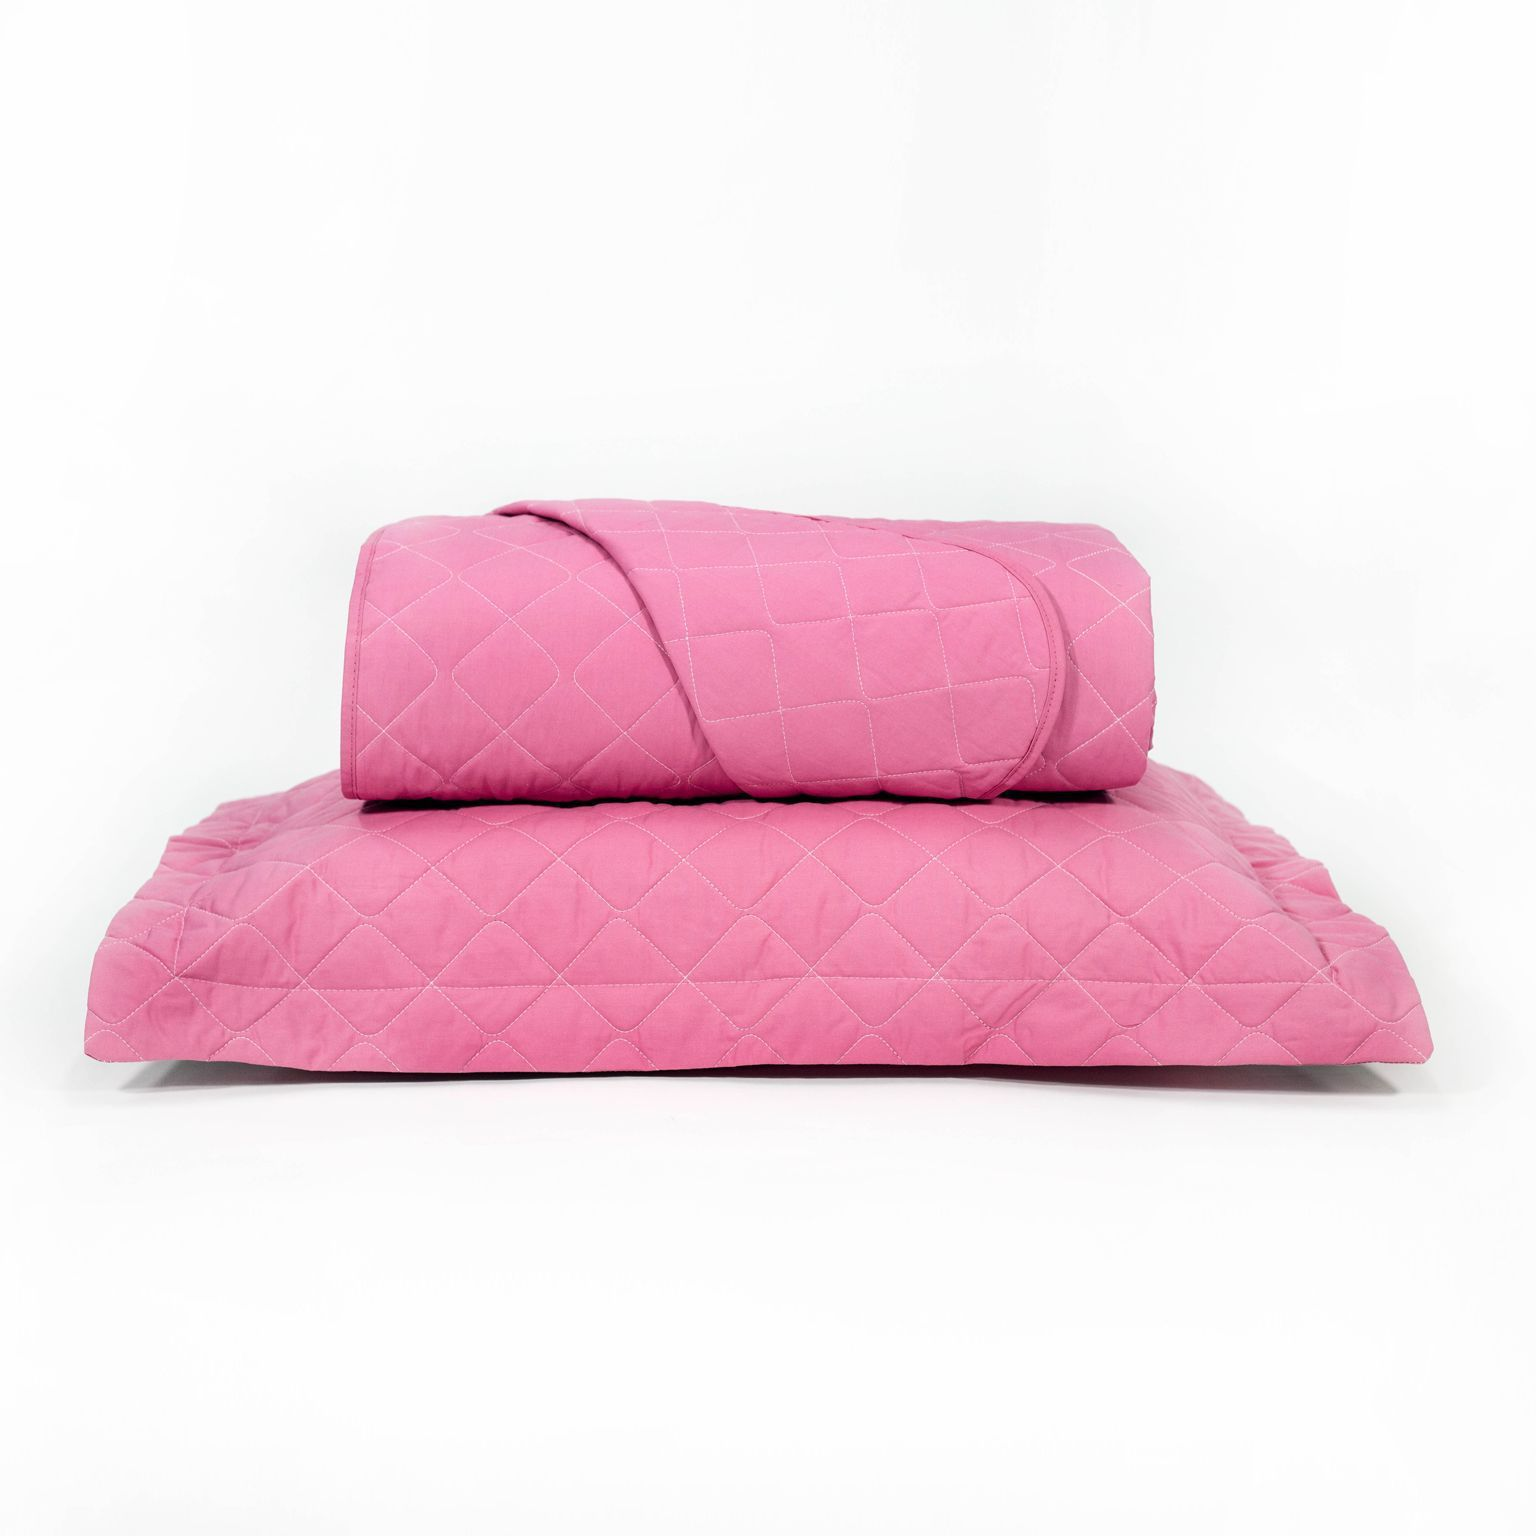 03c84506ce Kit Colcha Matelassê Percal Total Mix Casal Pink - ARTEX